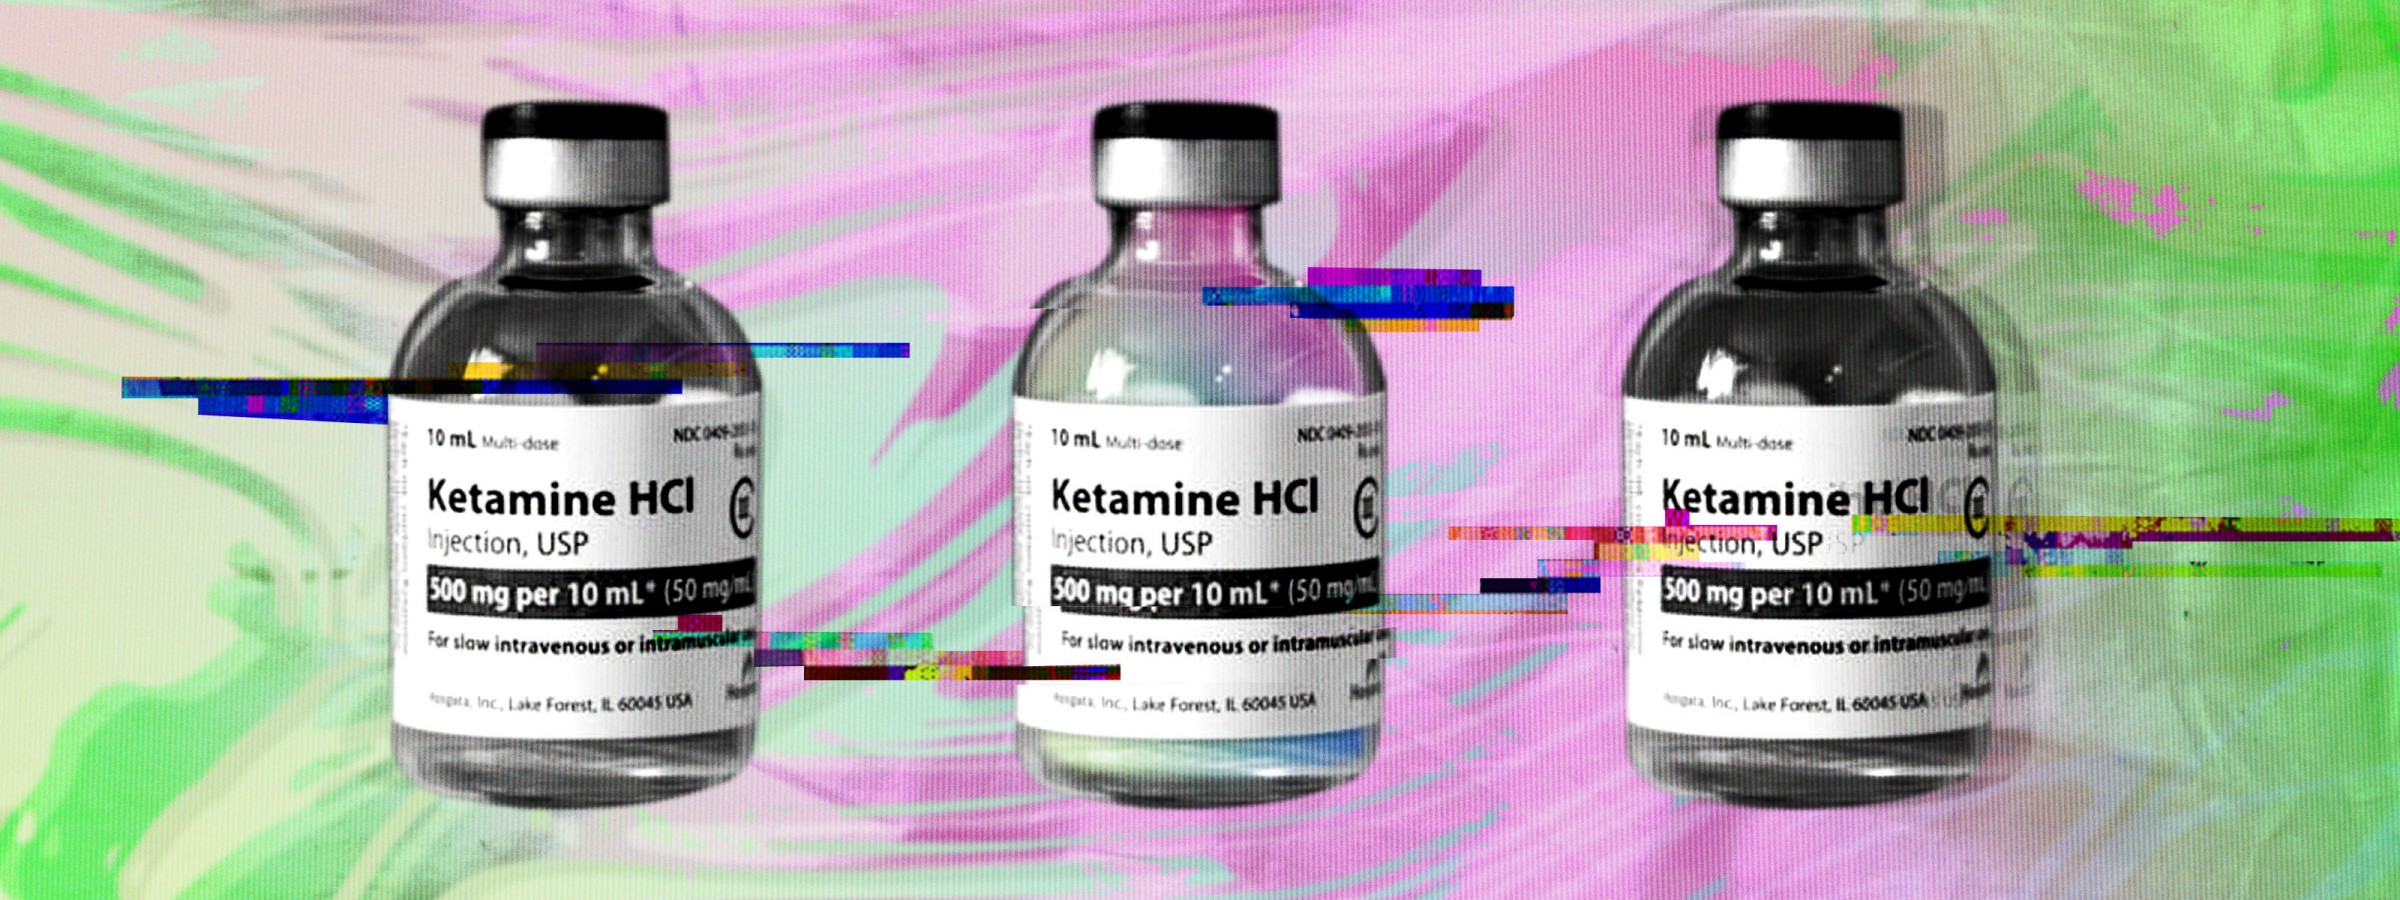 Freethink: Could VR Change How You Trip on Ketamine?